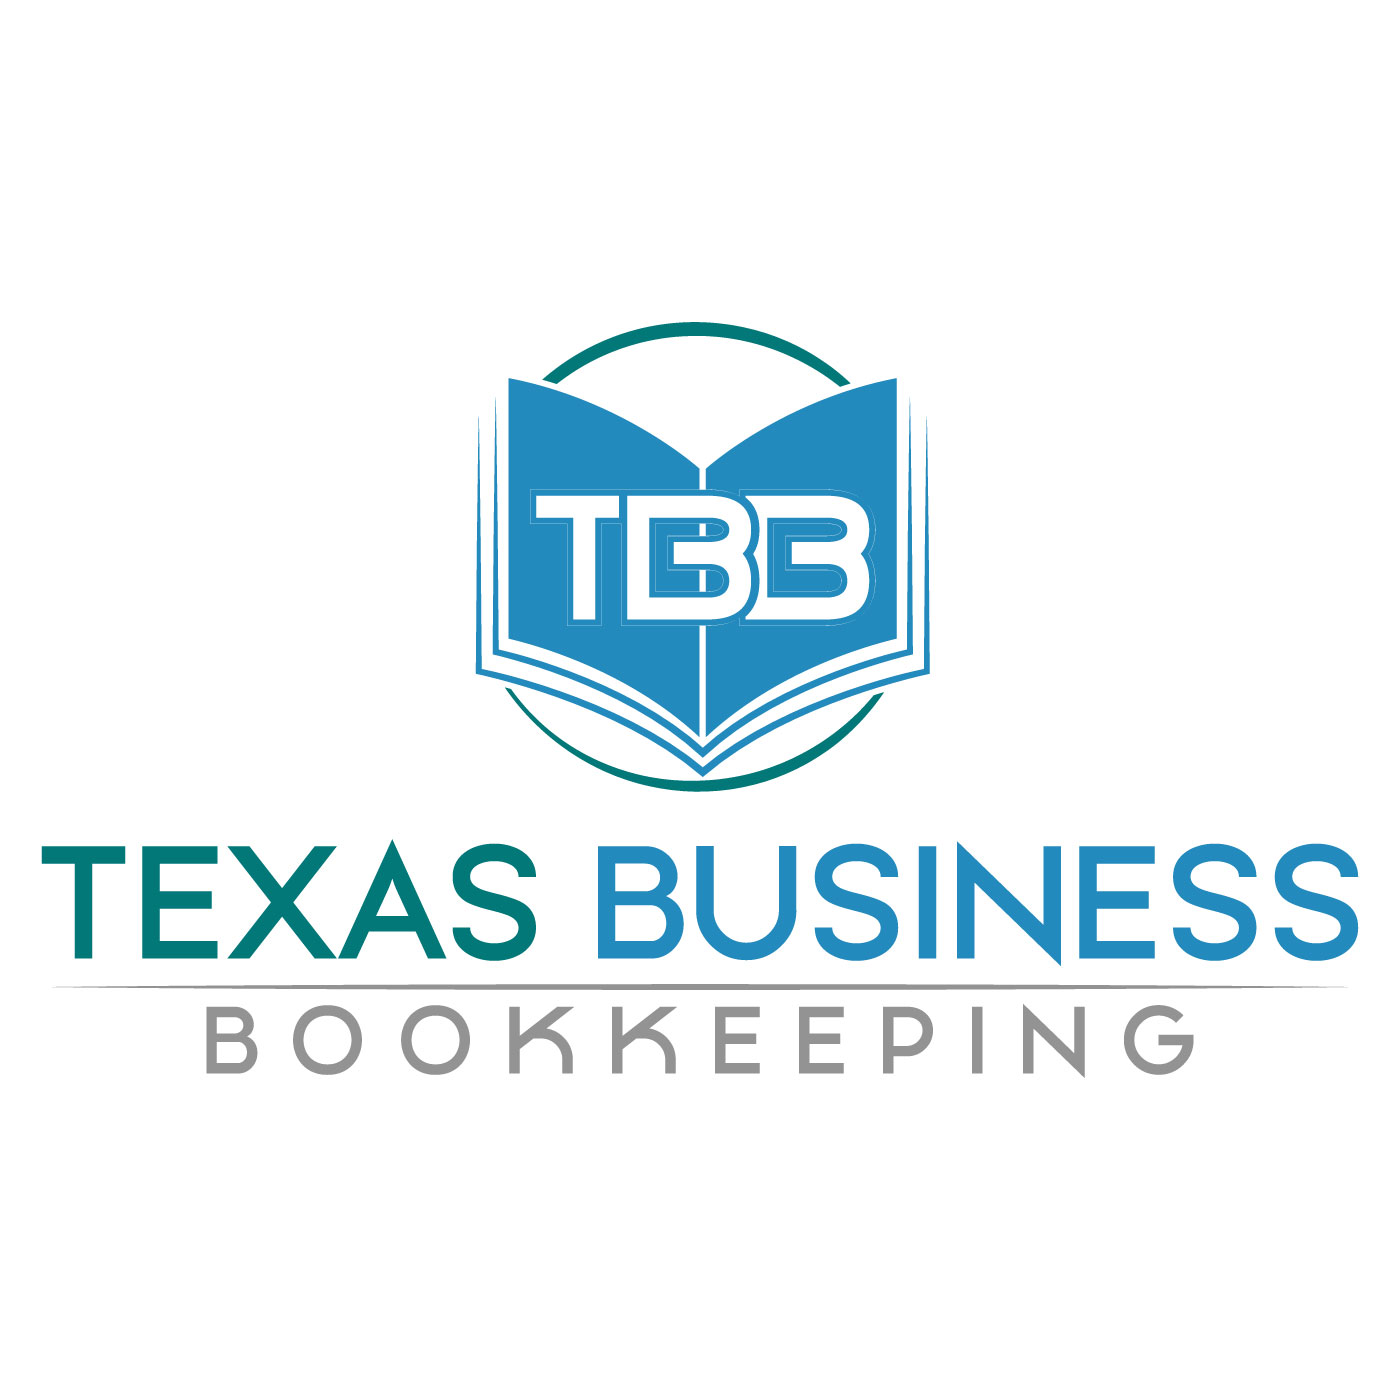 Texas Business Bookkeeping